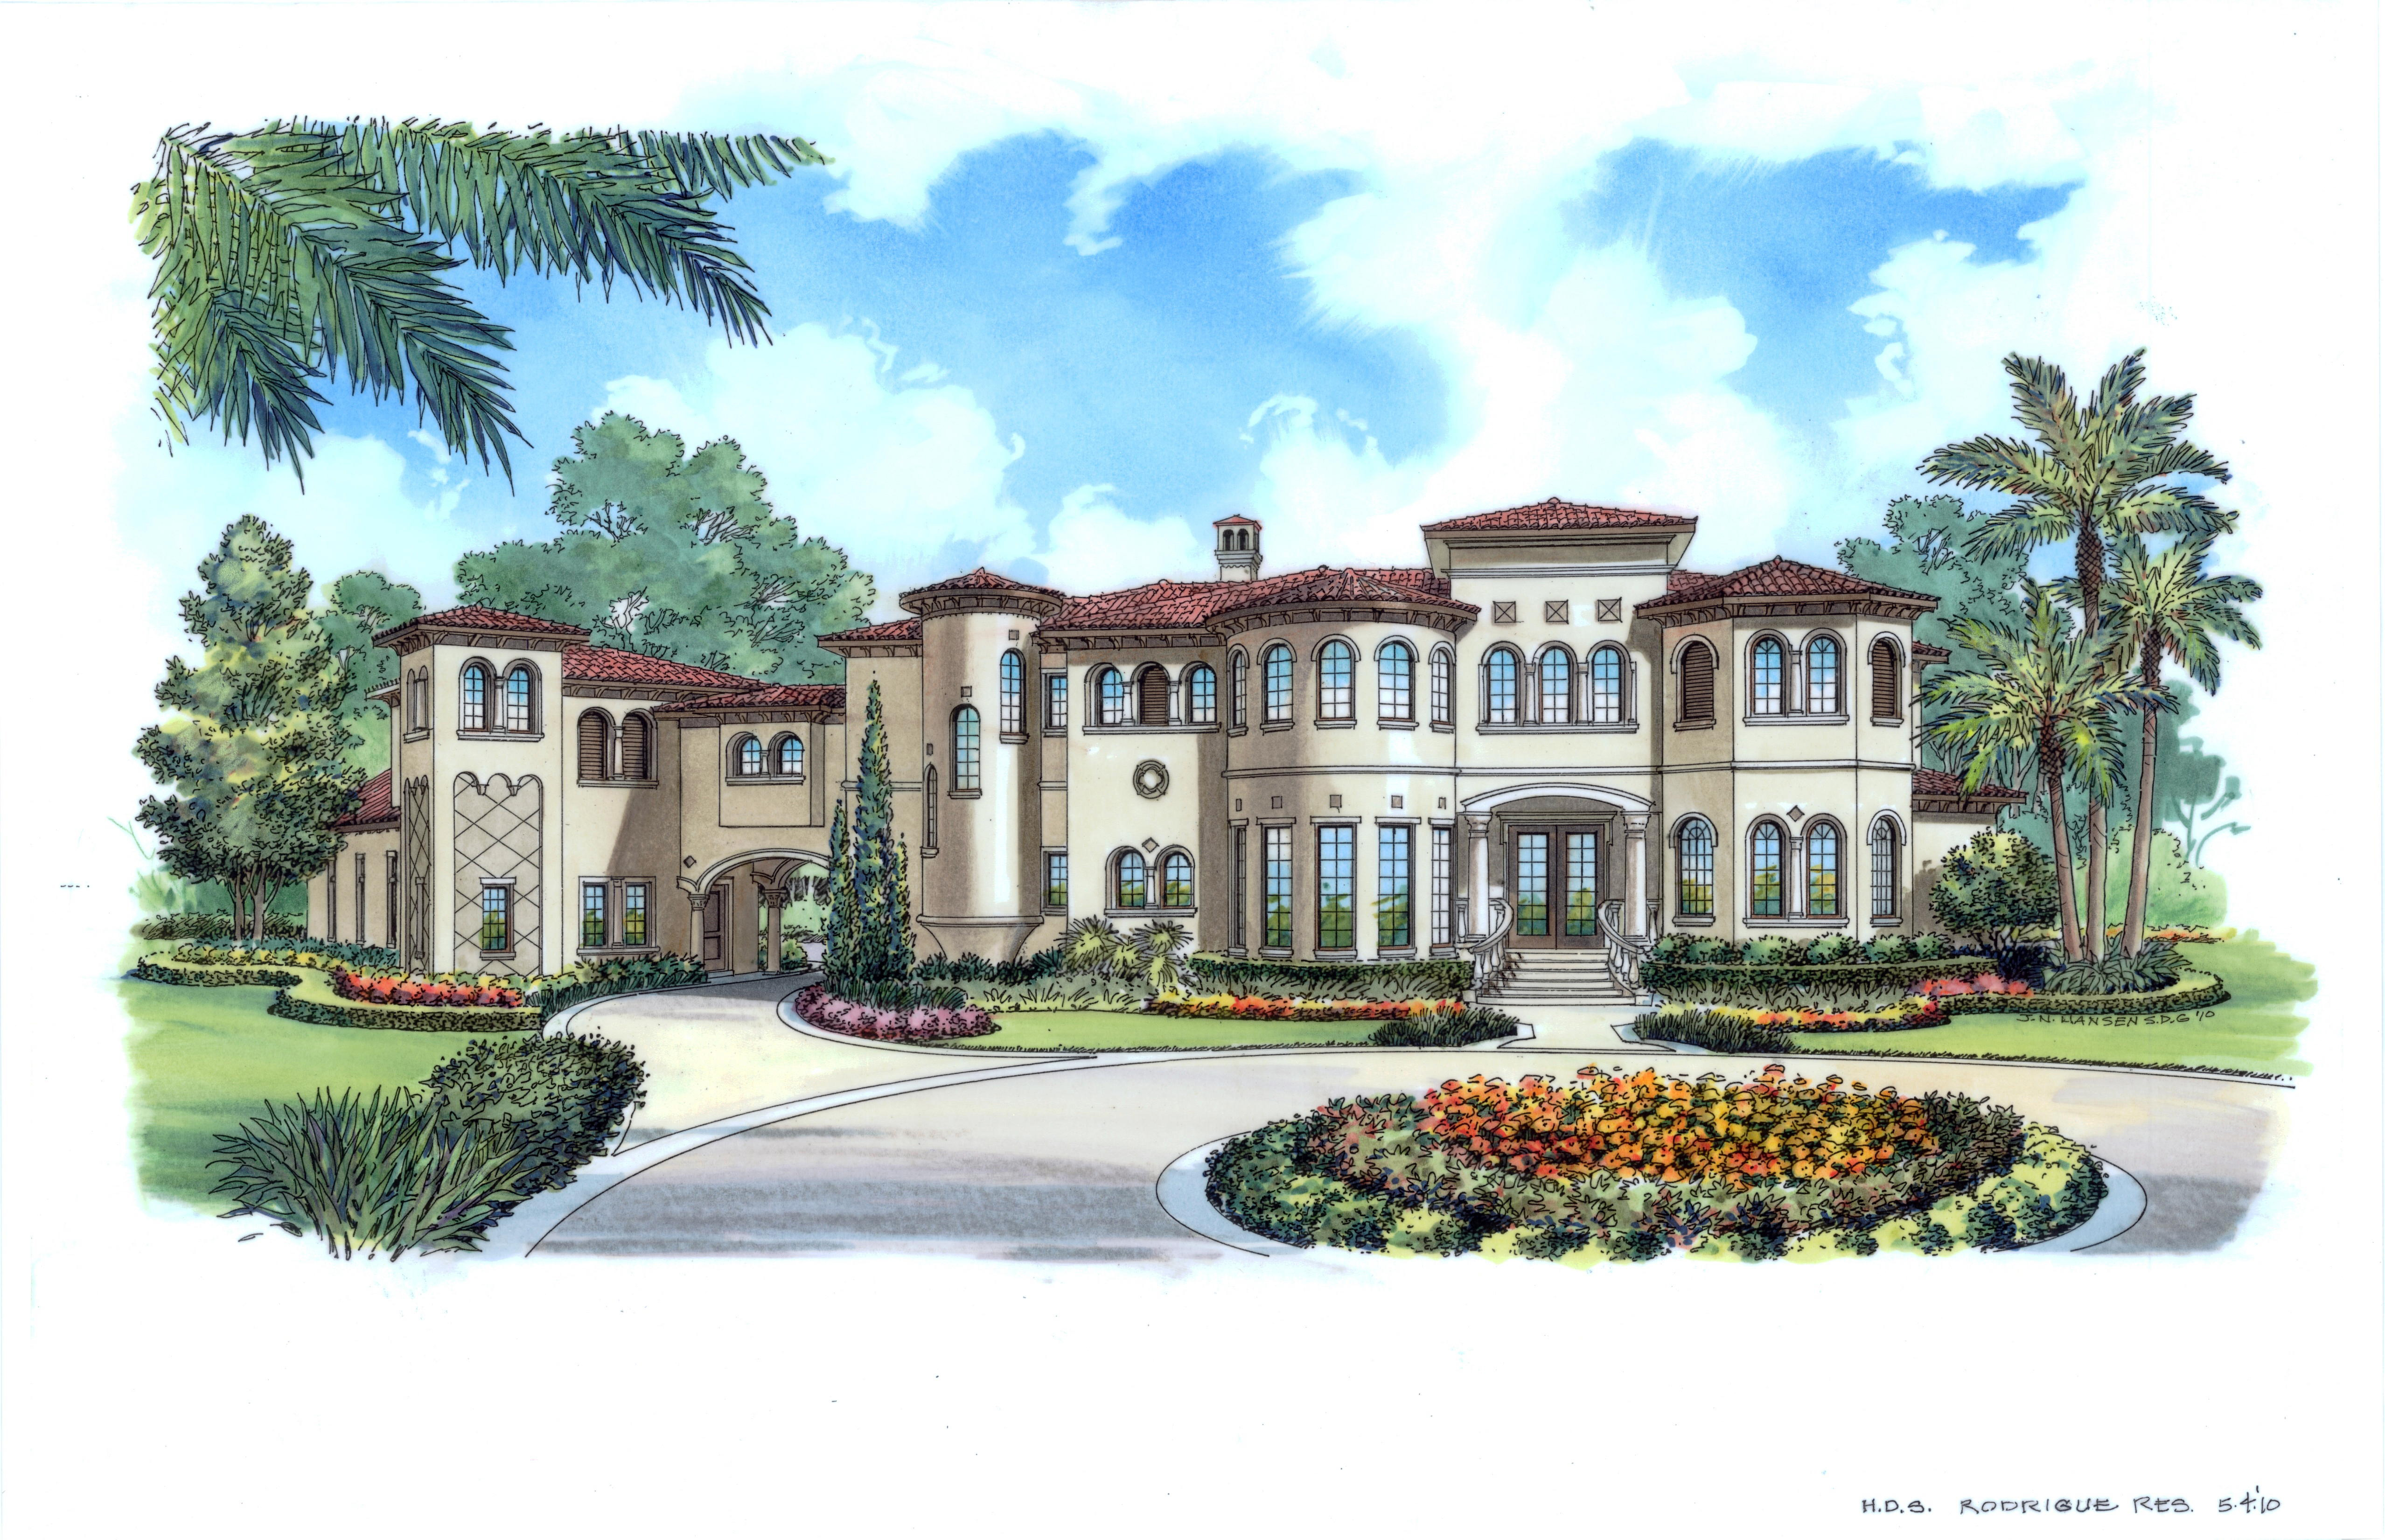 Estimate The Cost To Build For Palazzo Gracie Bhg 4924